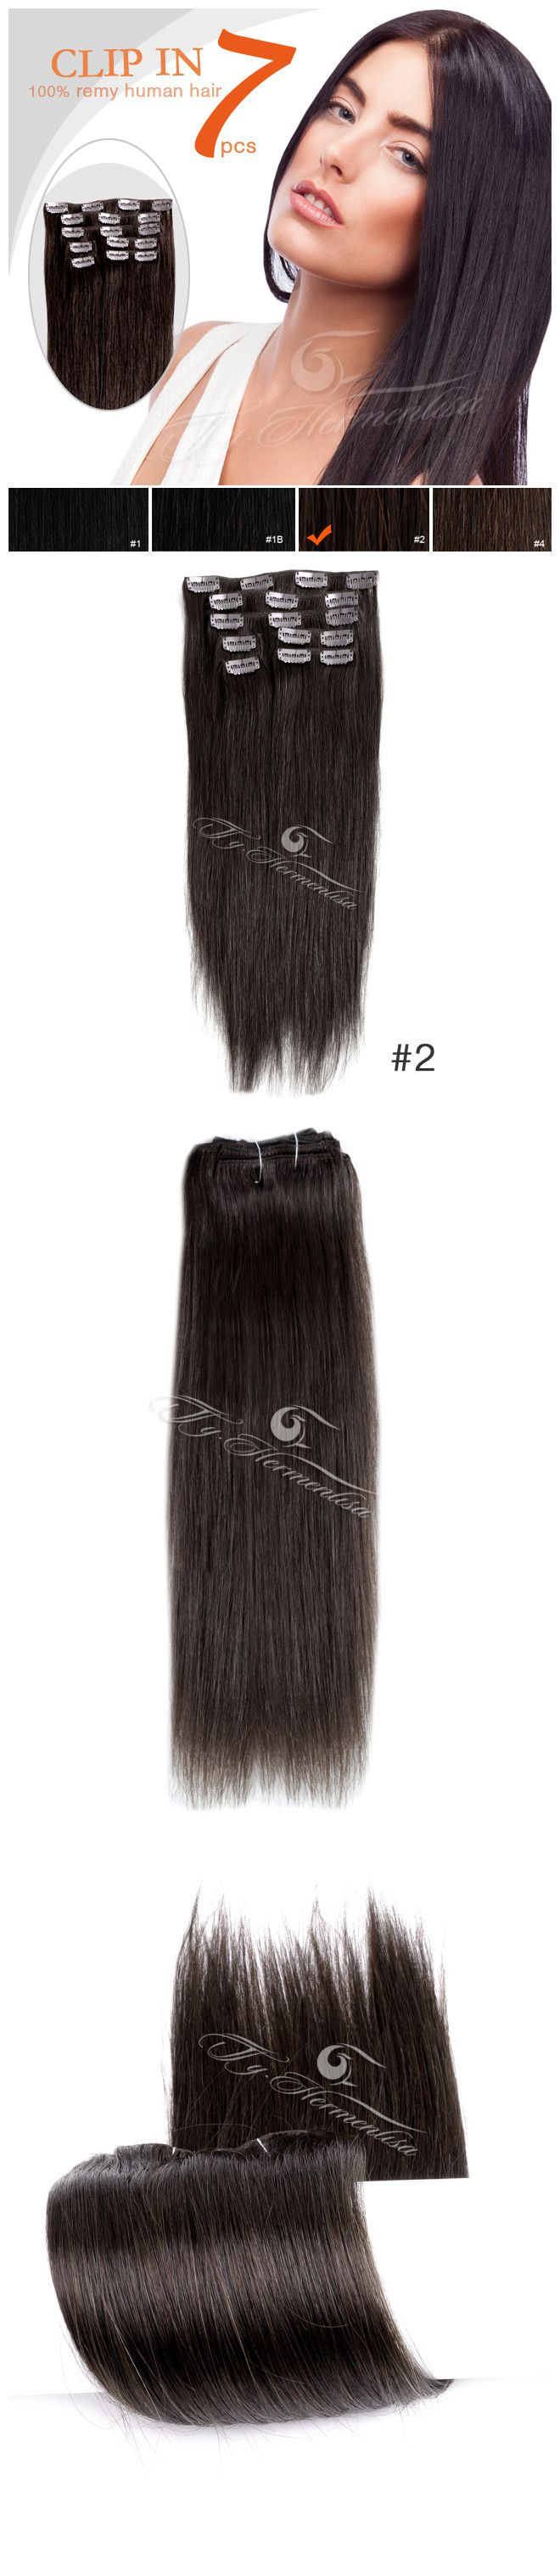 18 Inches 7 Pieces Clip In Remy Human Hair Extensions-Darkest Brown(#2)